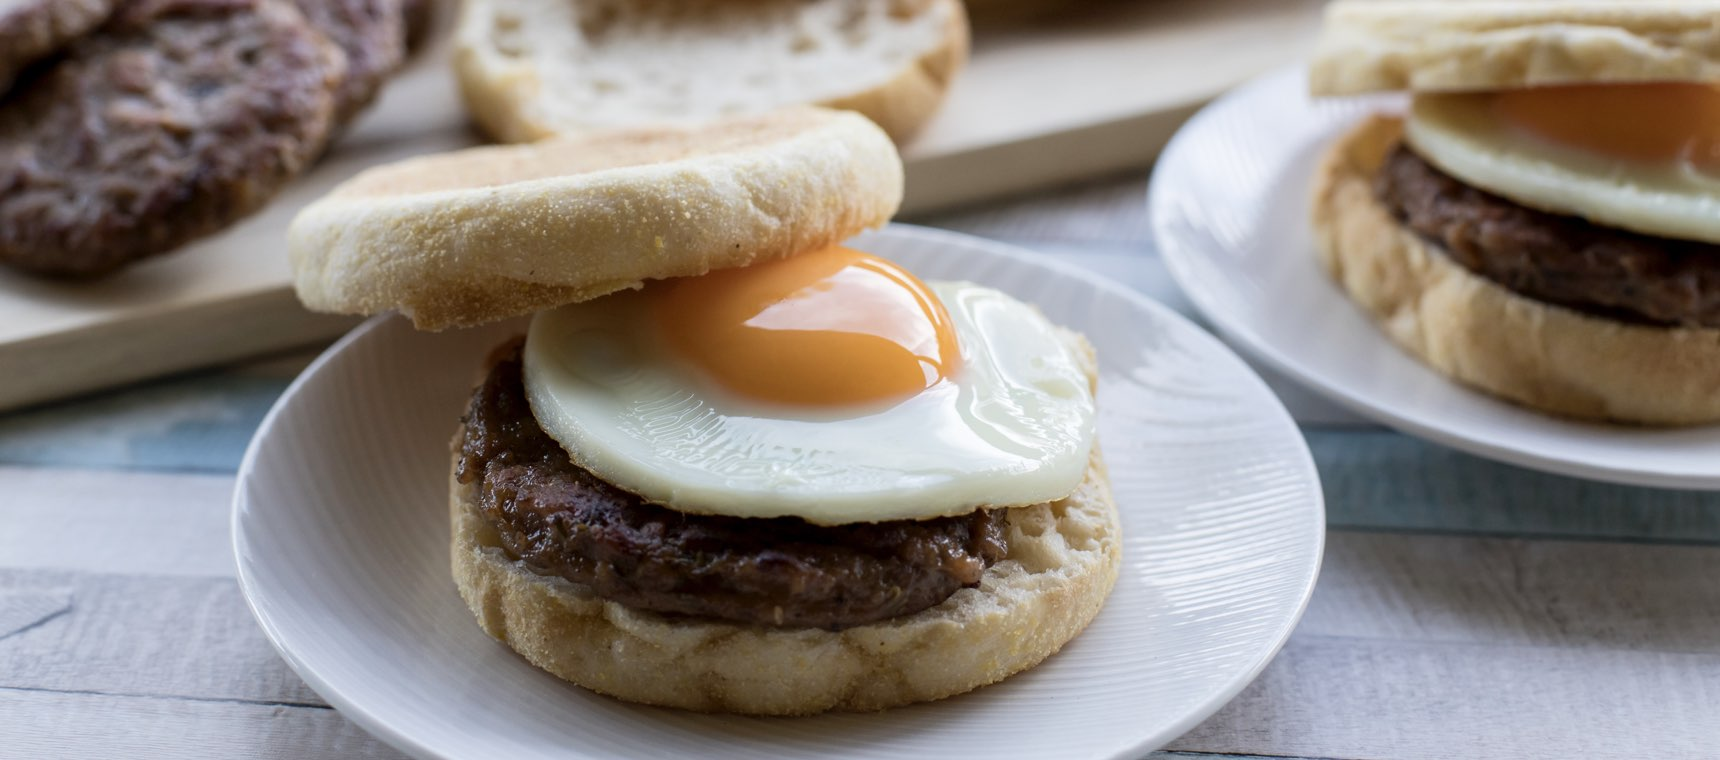 Sausage and Egg MixMuffin